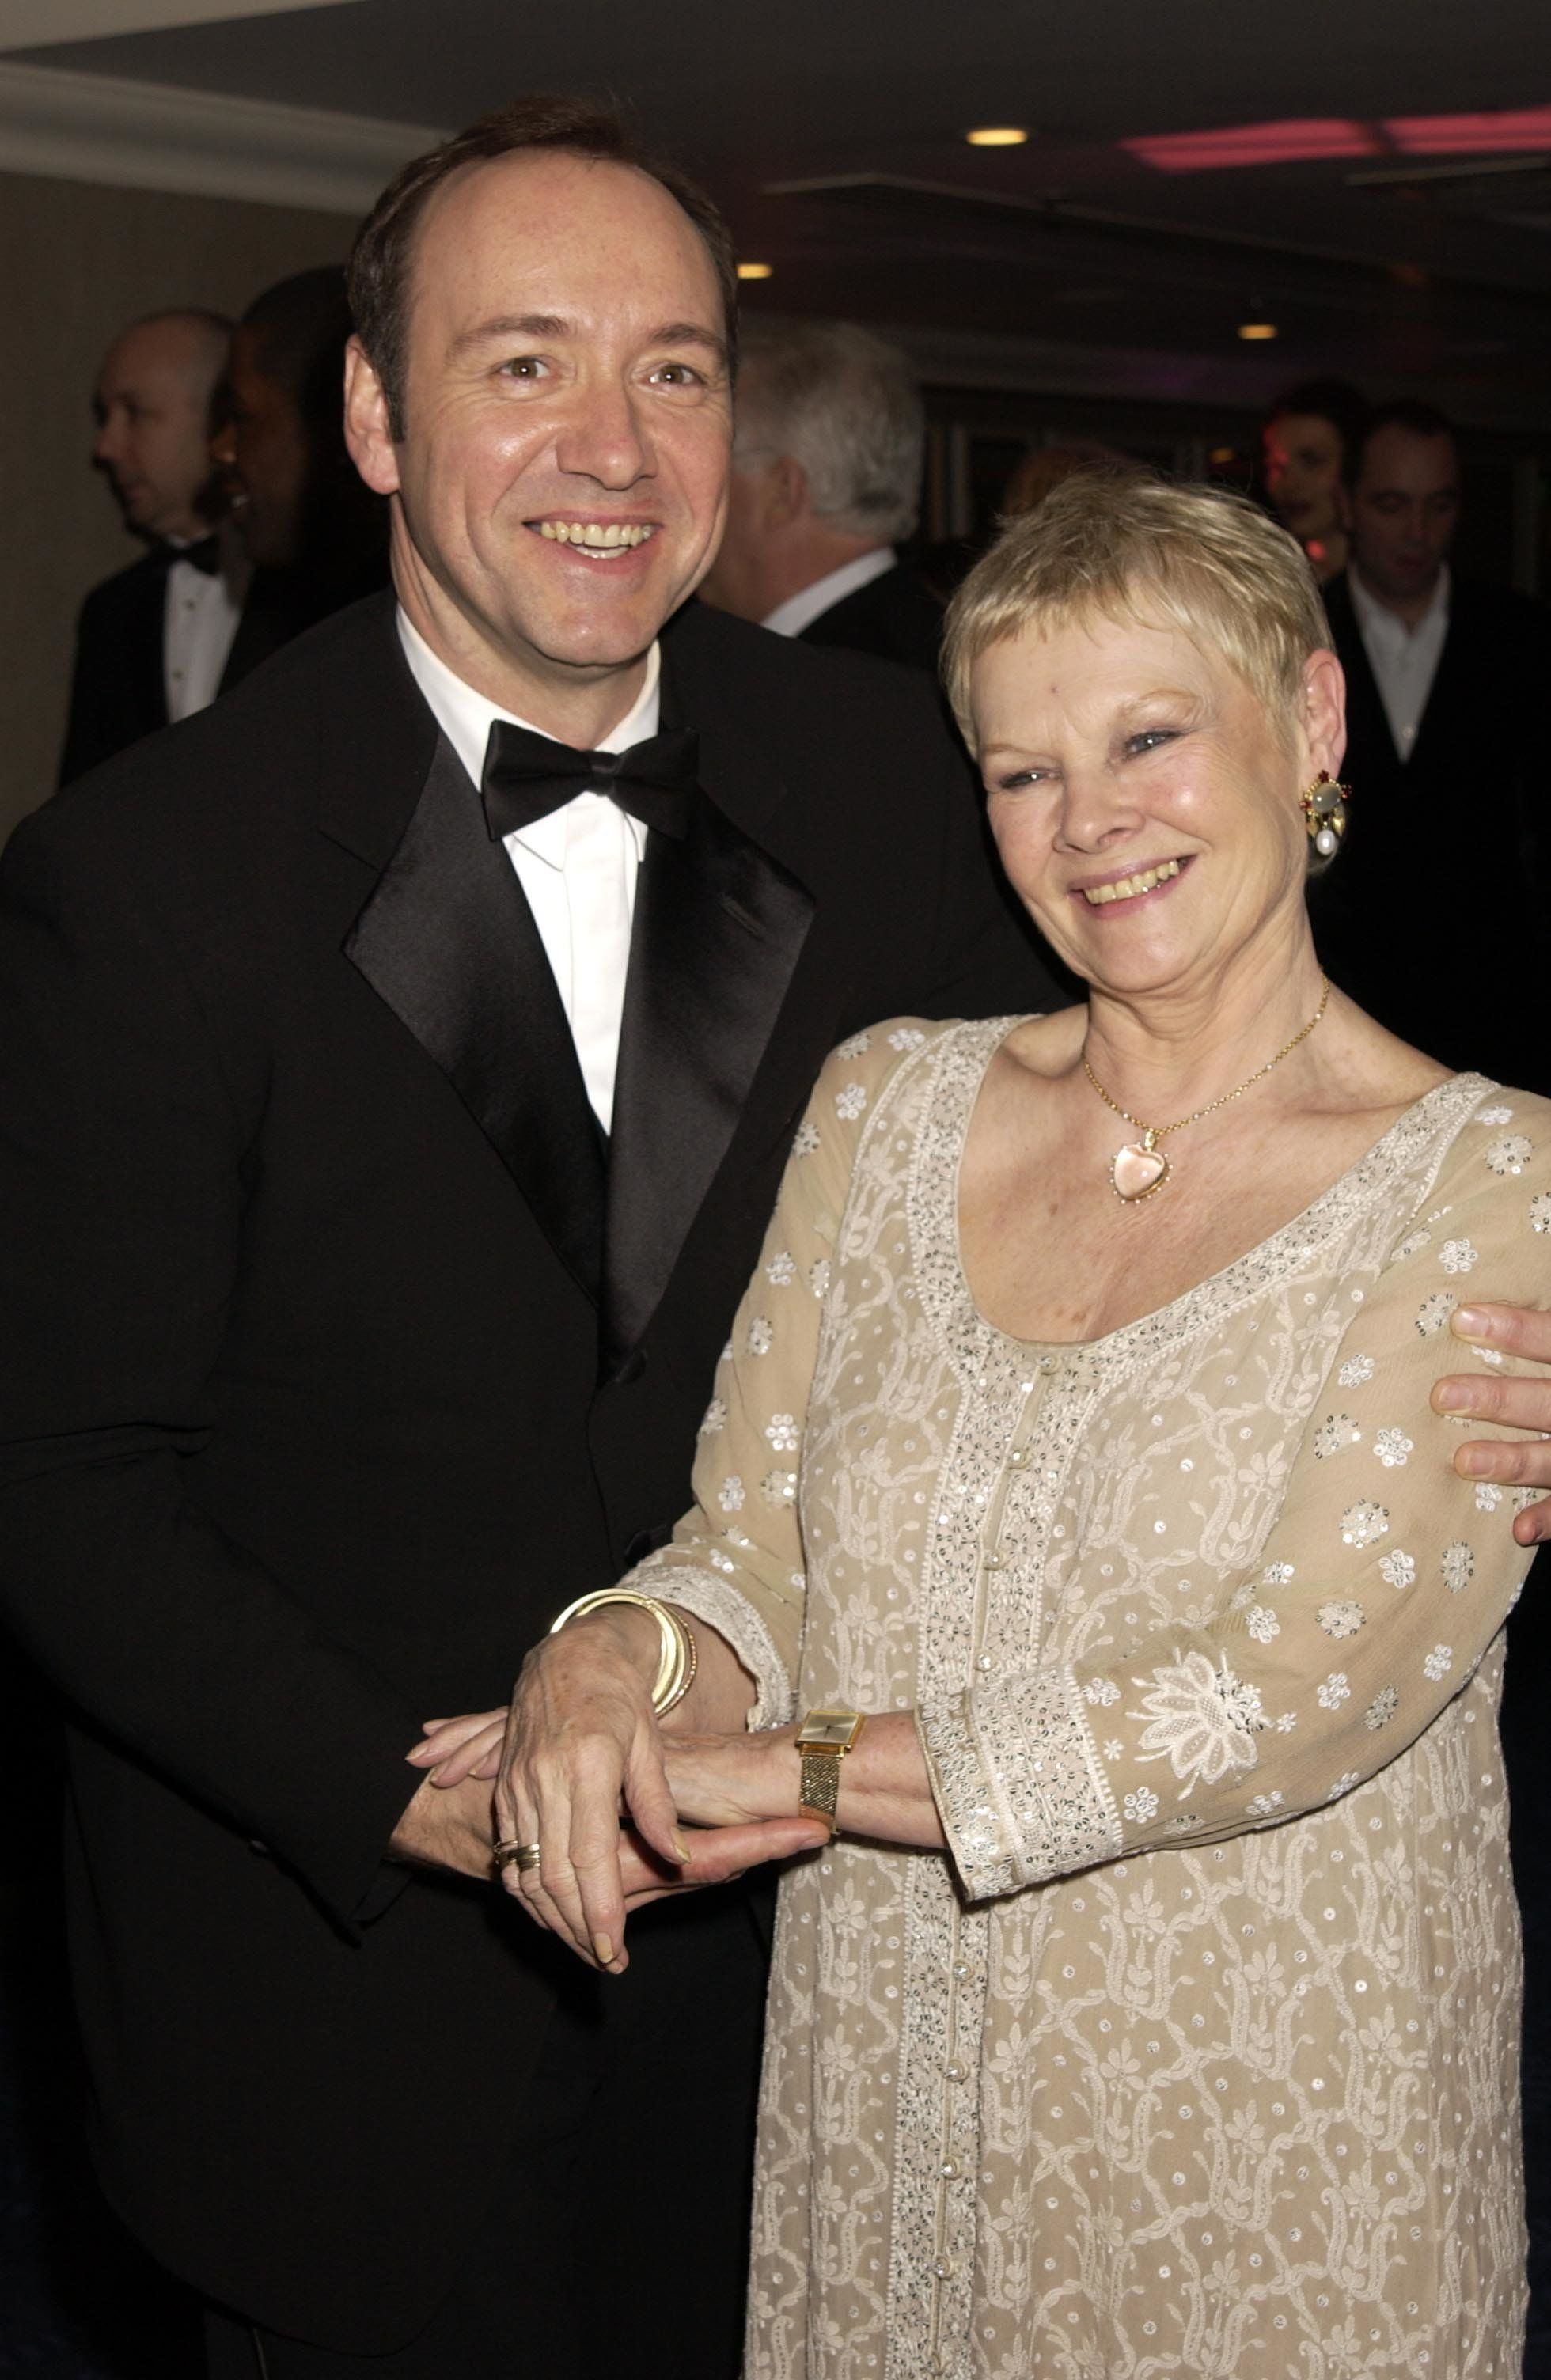 Judi Dench Defends 'Good Friend' Kevin Spacey Amid Sexual Misconduct